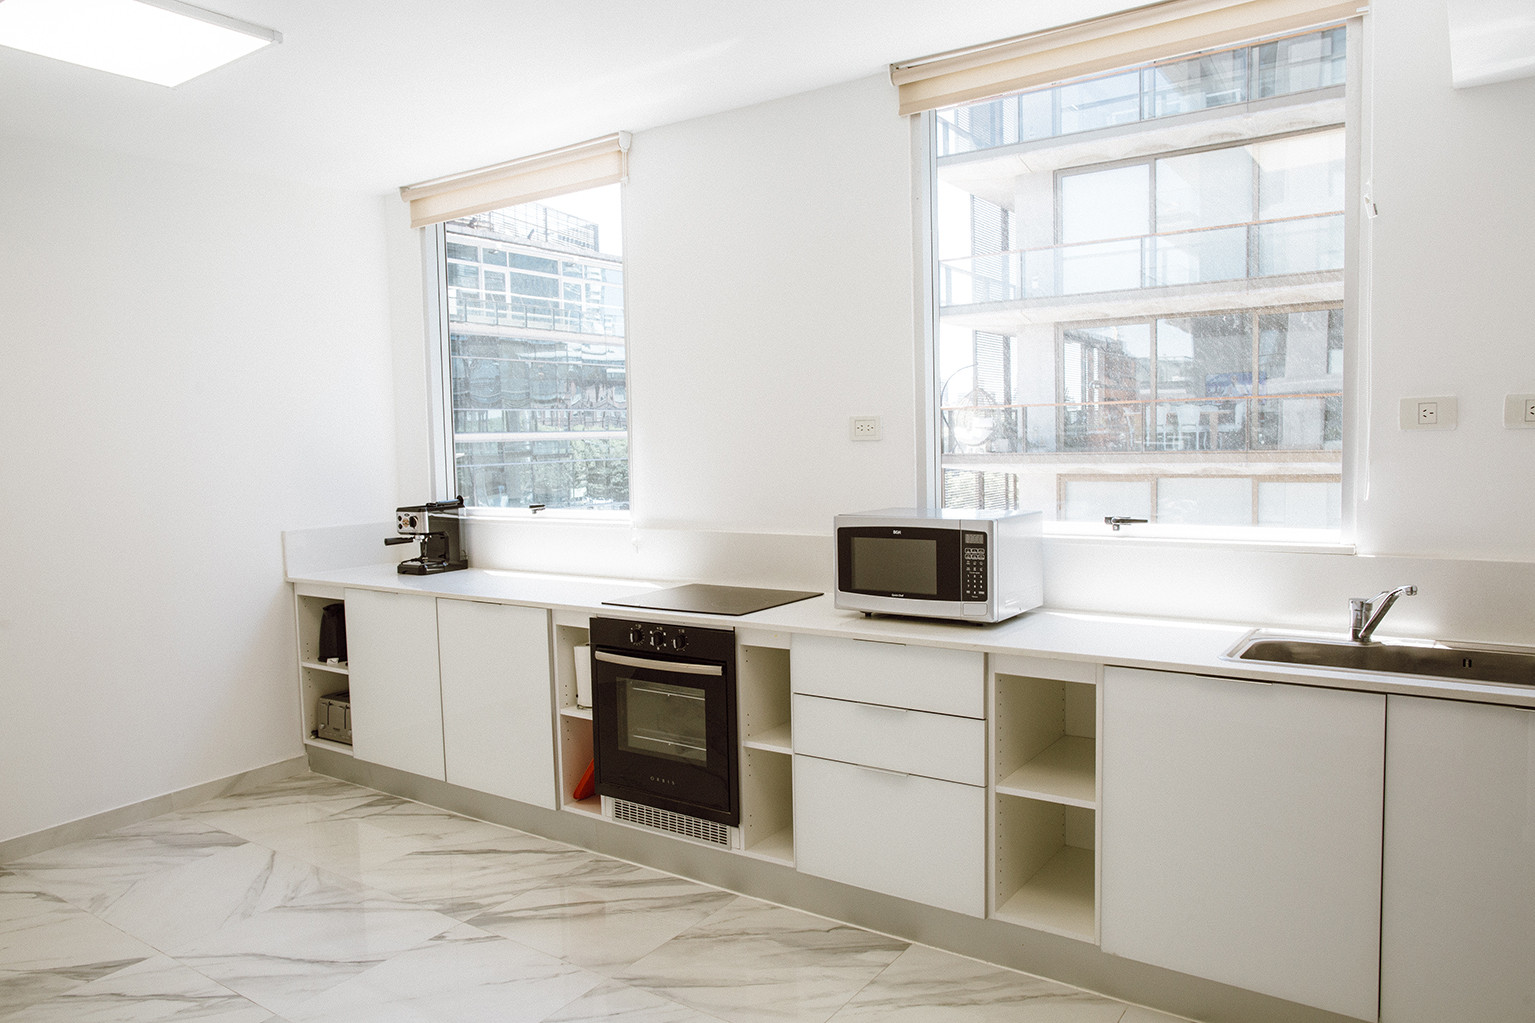 Kitchen area at Lumiere Apartments